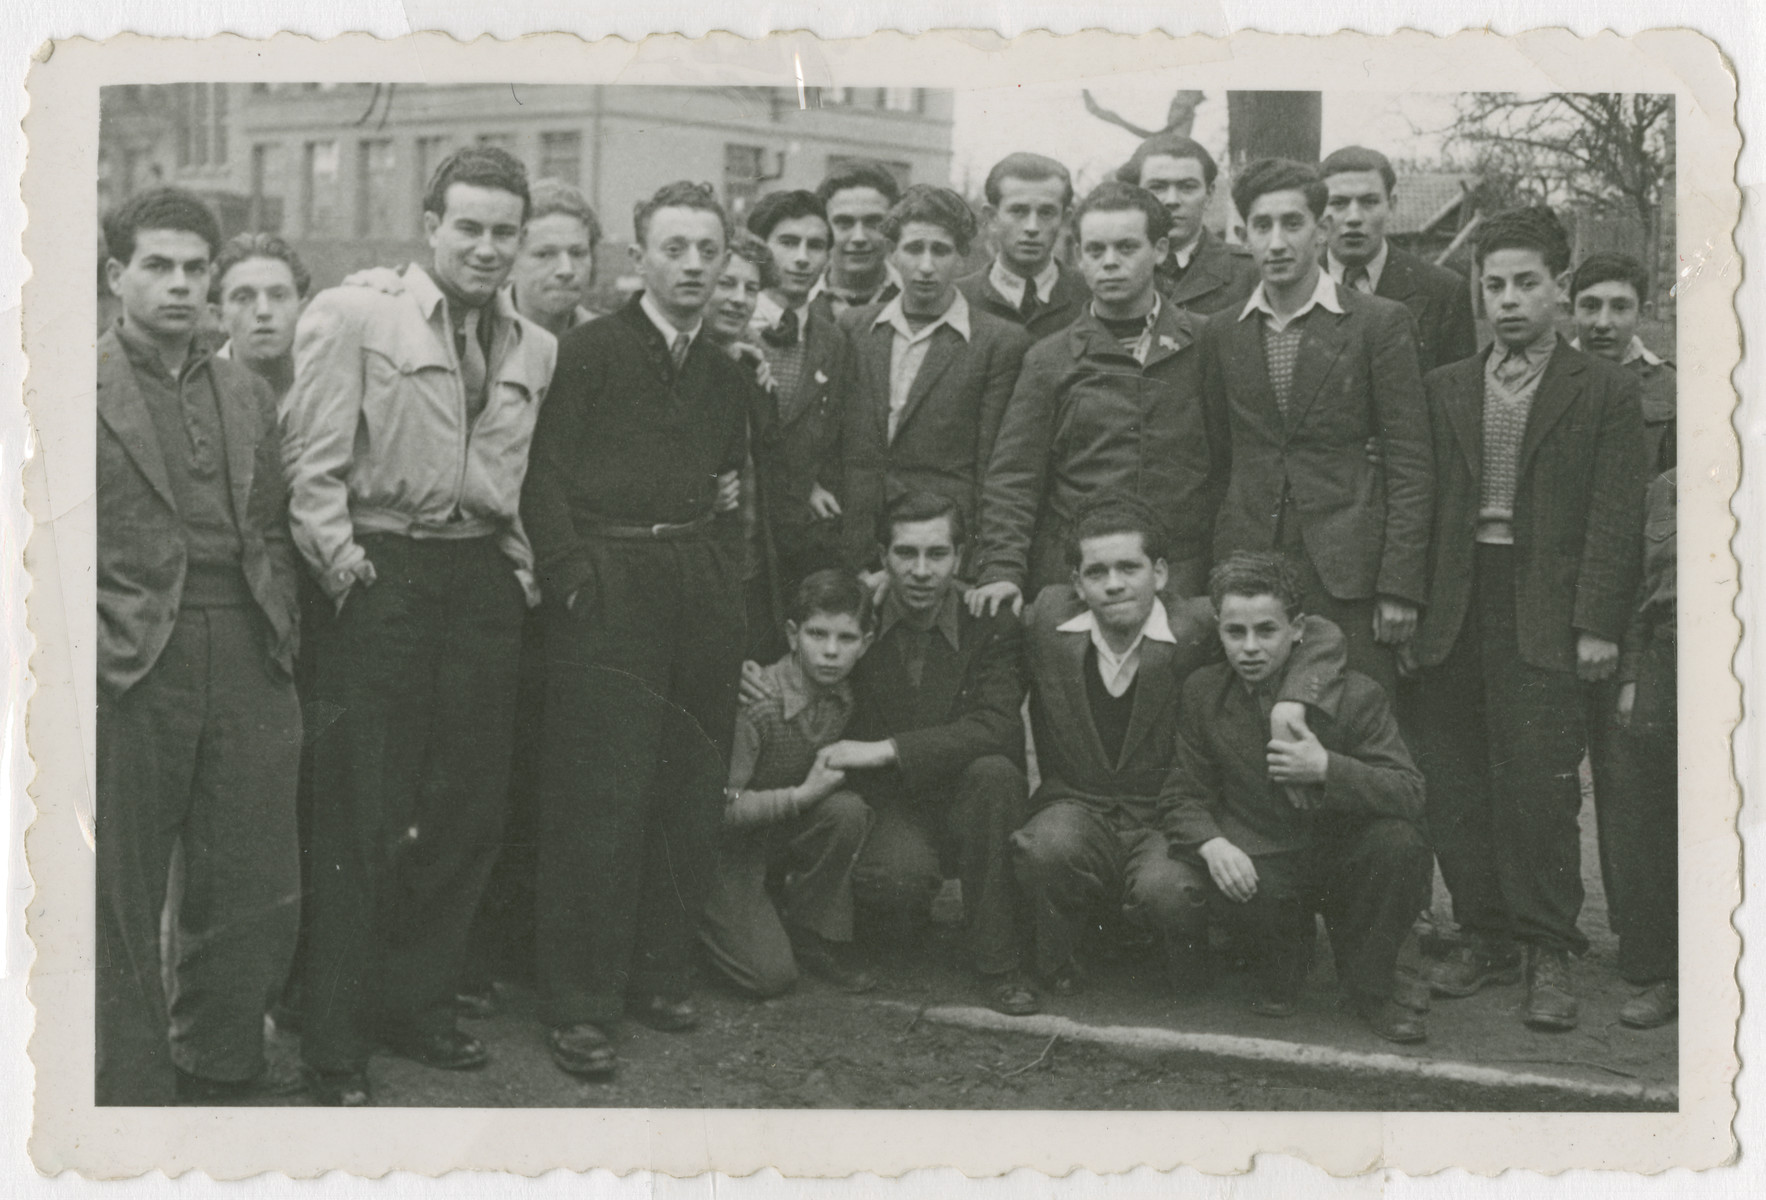 Group portrait of Jewish teenagers from the Aglasterhausen children's home.  Sziku Smilovic is pictured standing seventh from the left.